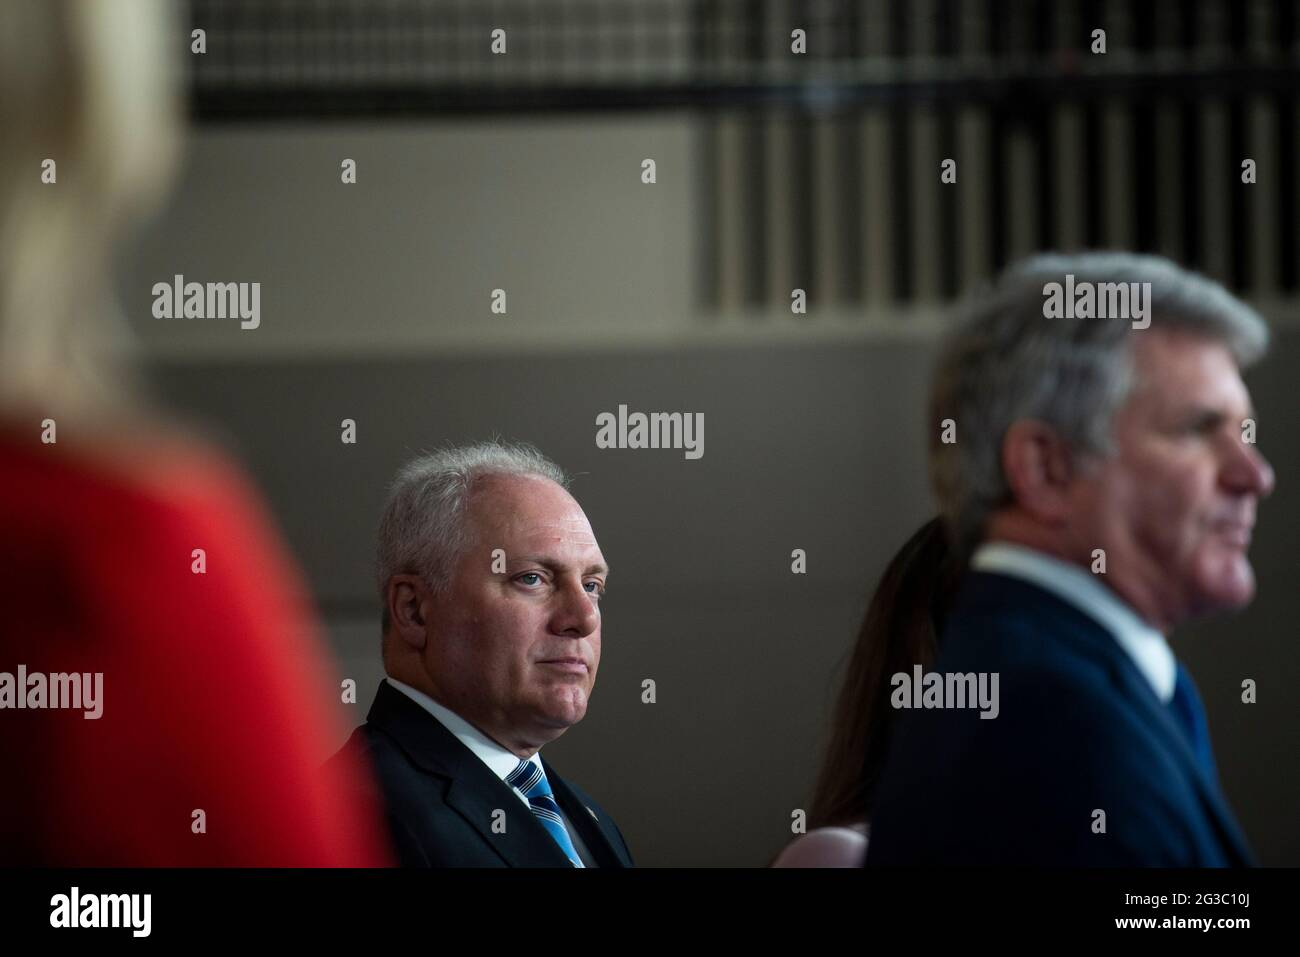 United States House Minority Whip Steve Scalise (Republican of Louisiana) waits to offer remarks during a press conference at the US Capitol, in Washington, DC, Tuesday, June 15, 2021. Credit: Rod Lamkey/CNP /MediaPunch Stock Photo